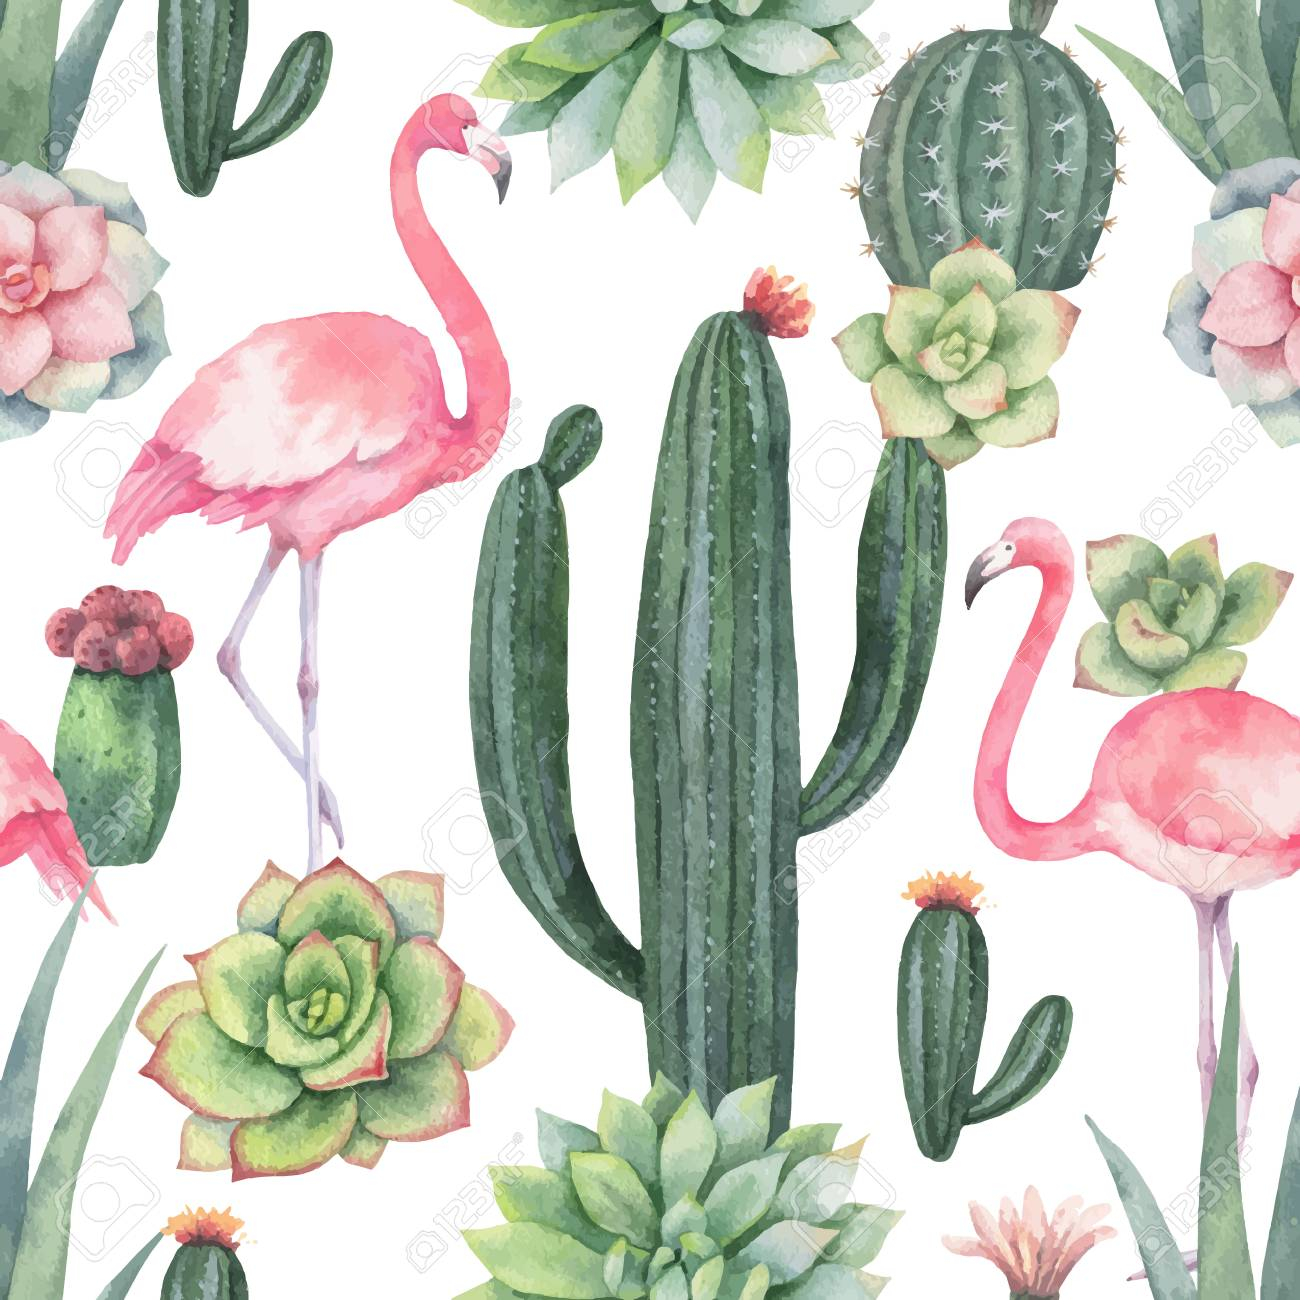 Watercolor vector seamless pattern of pink flamingo, cacti and succulent plants isolated on white background. - 100972990